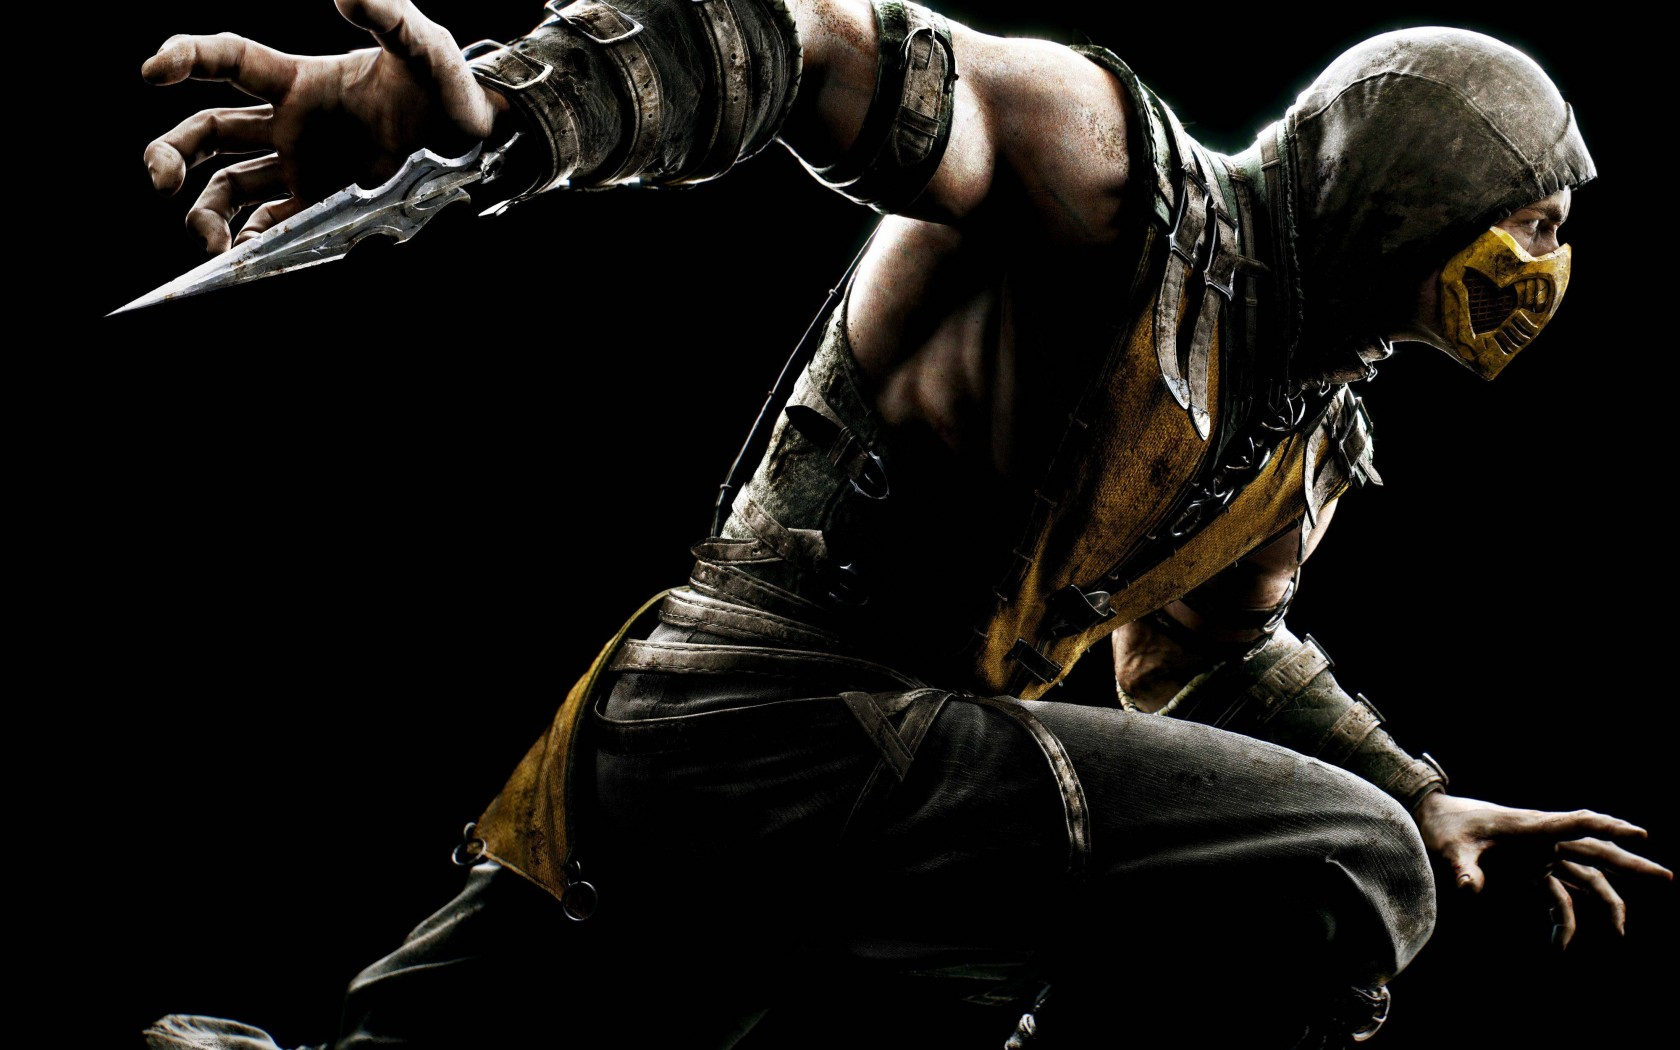 Mortal Kombat wallpaper Scorpion 11